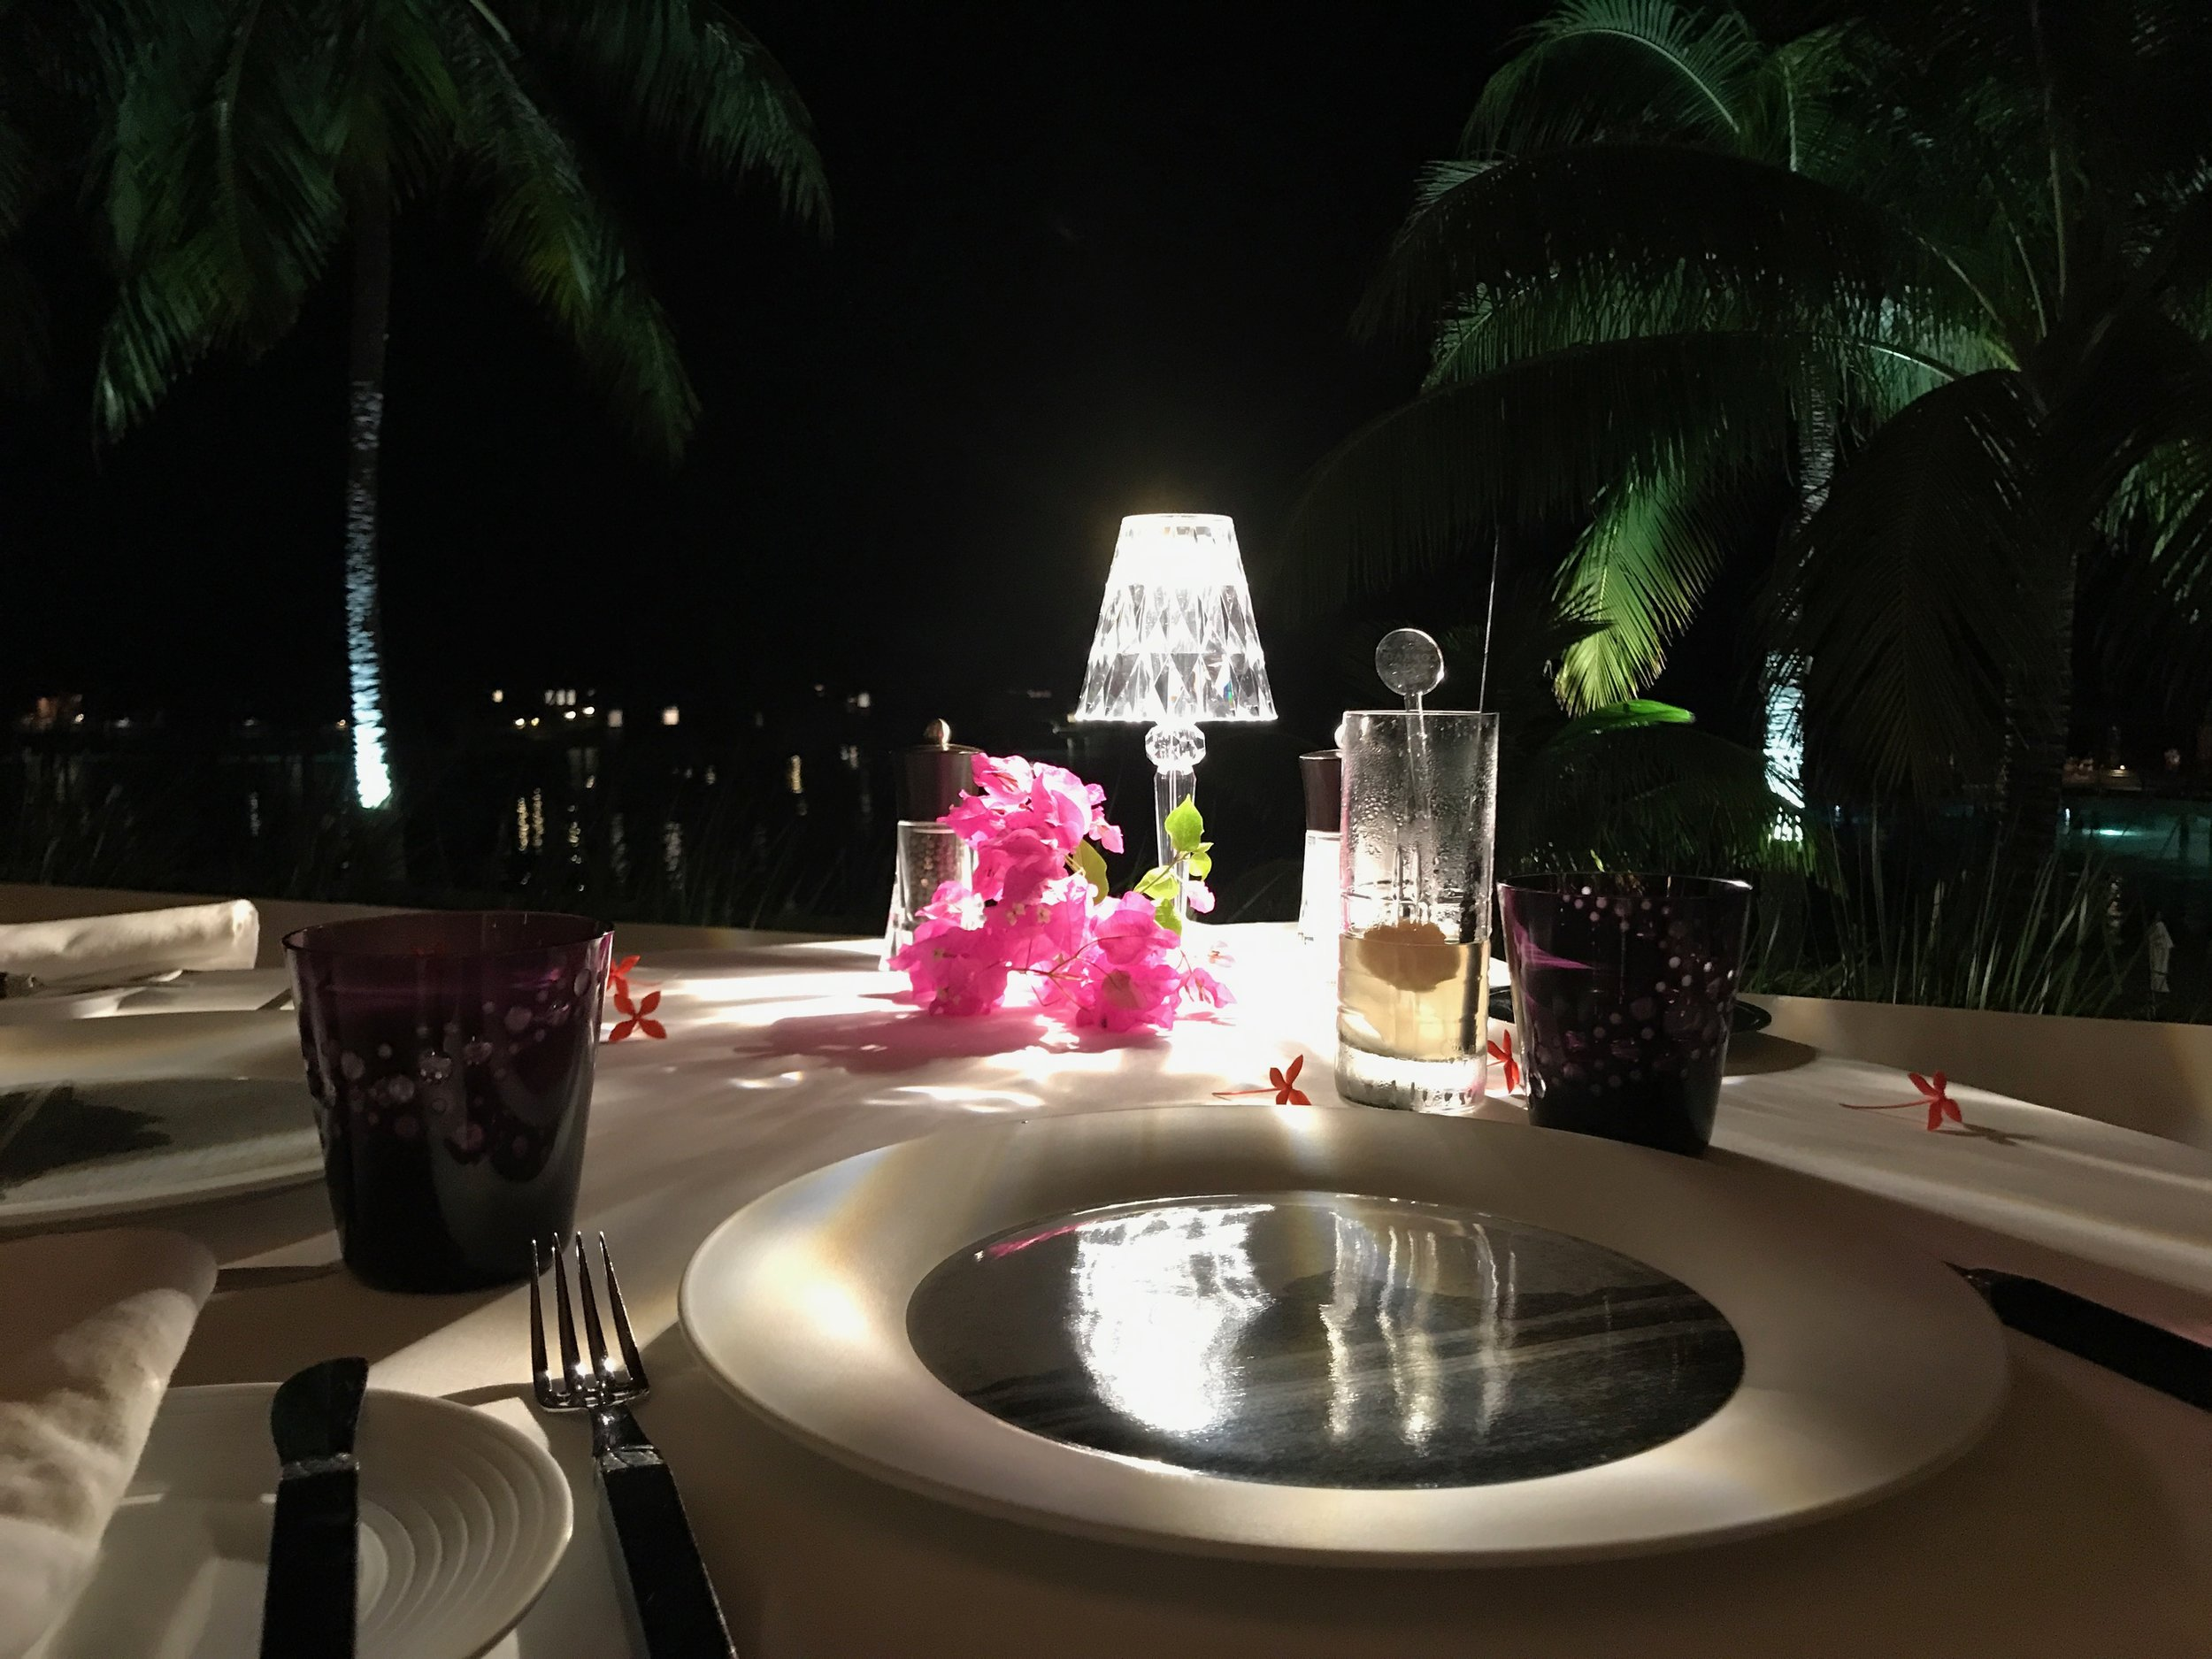 Request a romantic table on the terrace with a view of the water at night at the Iriatai